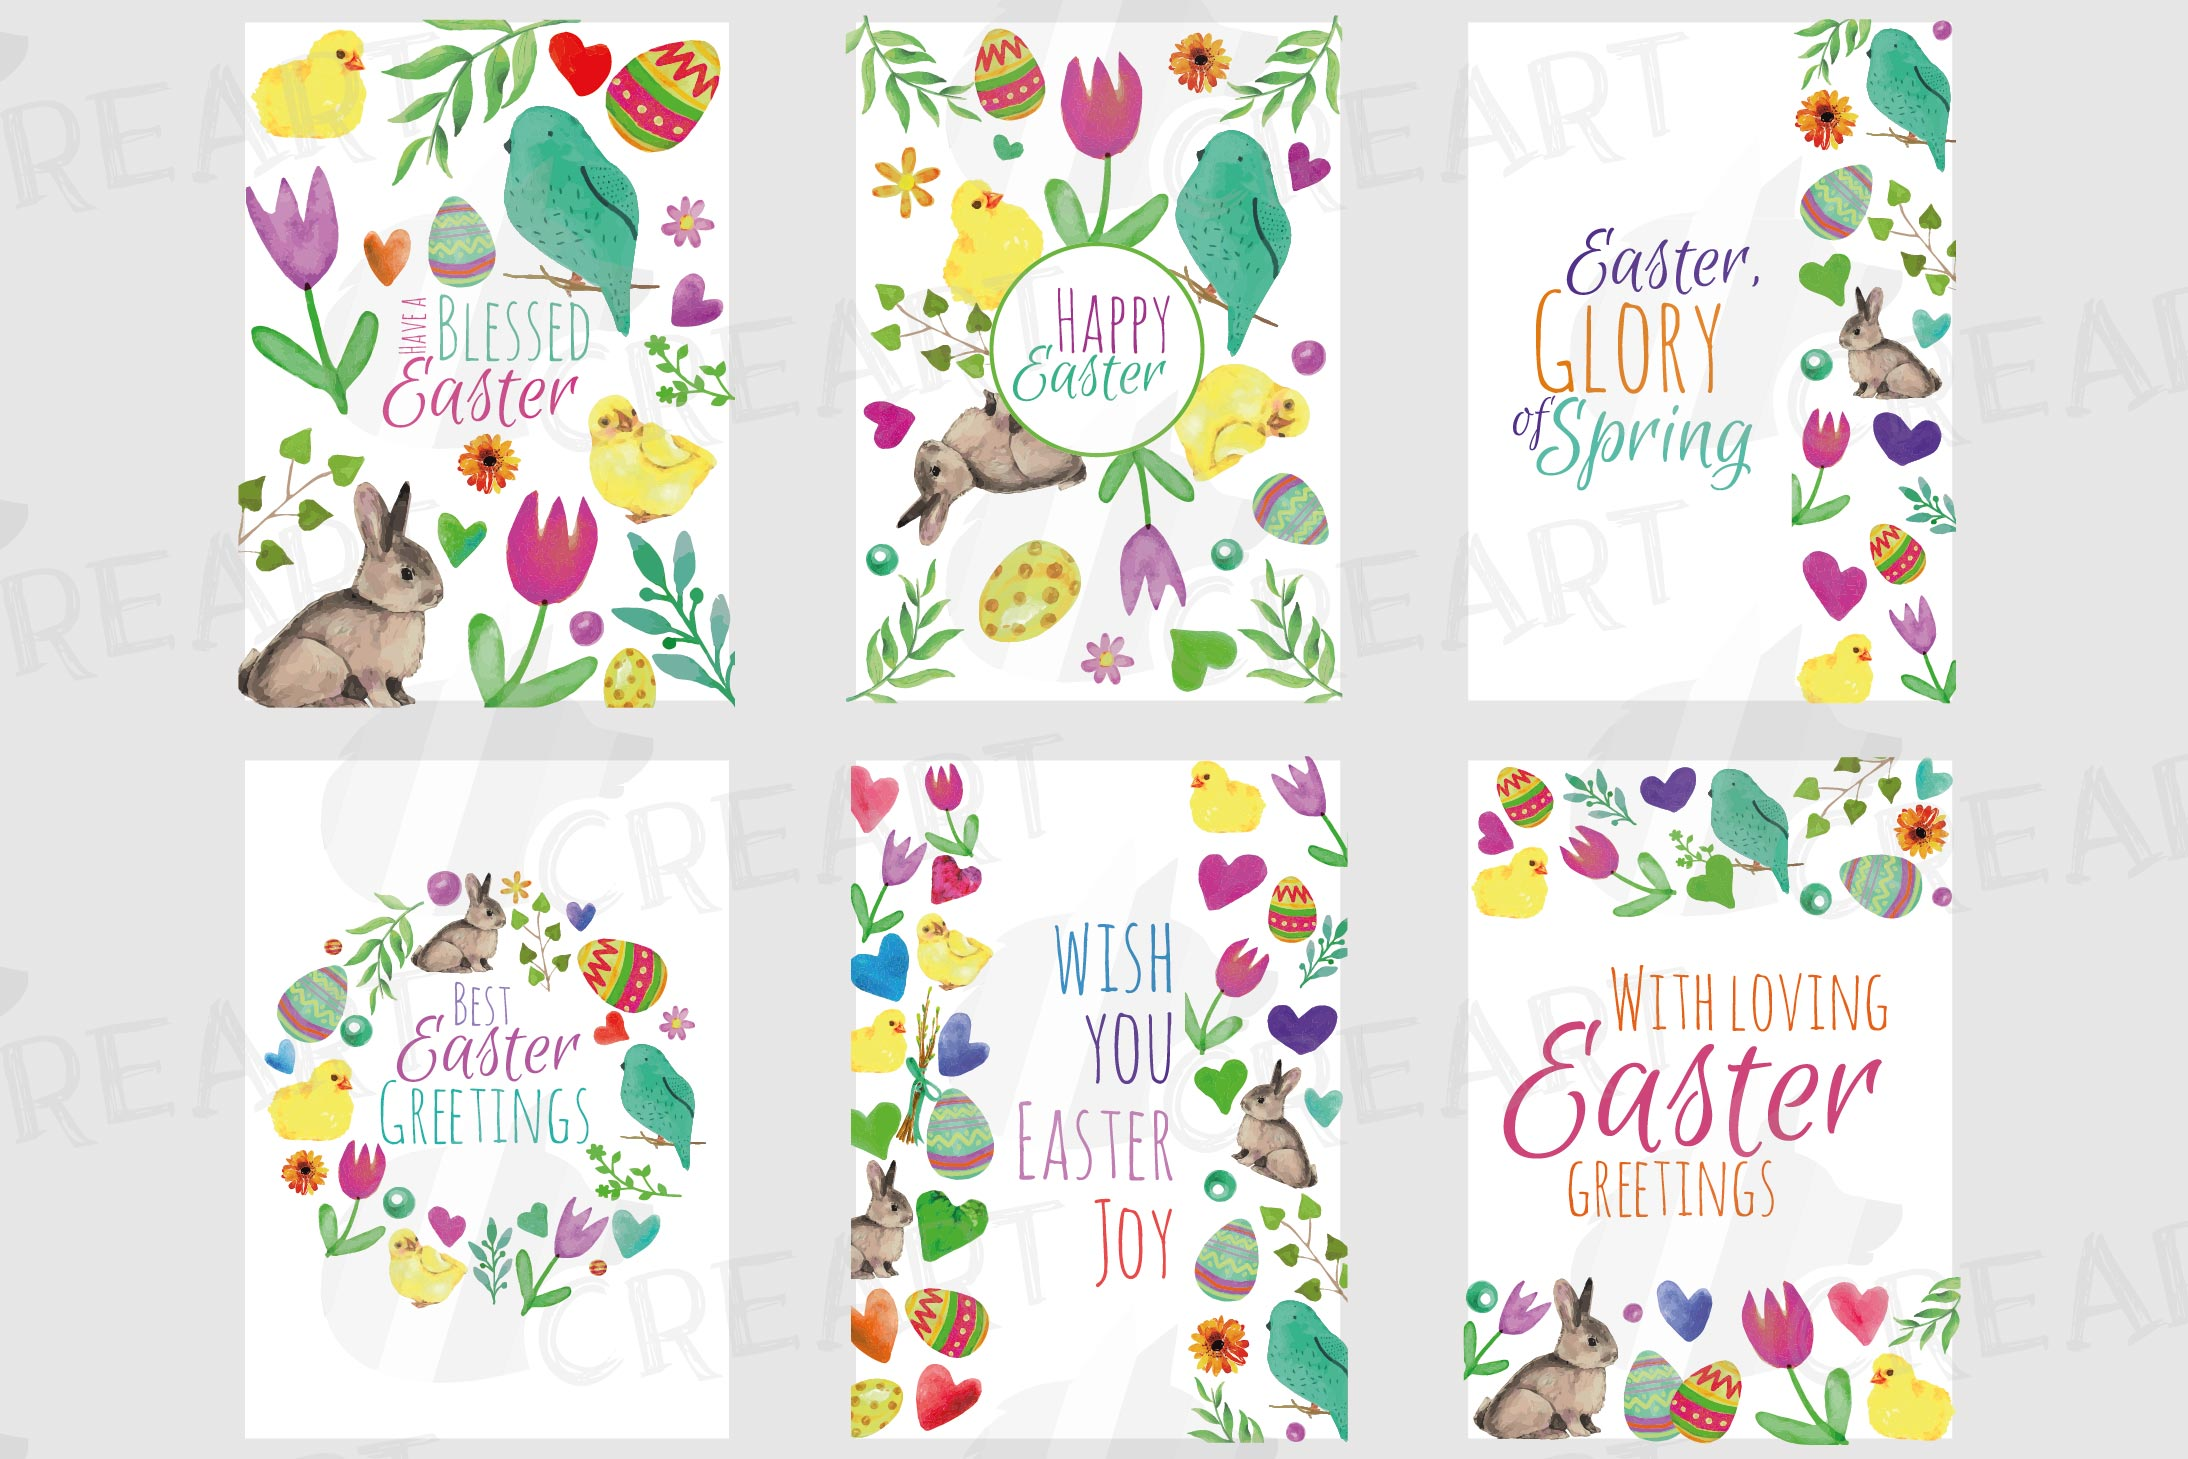 Easter greeting cards, 6 Happy Easter cards, colorful cards example image 4